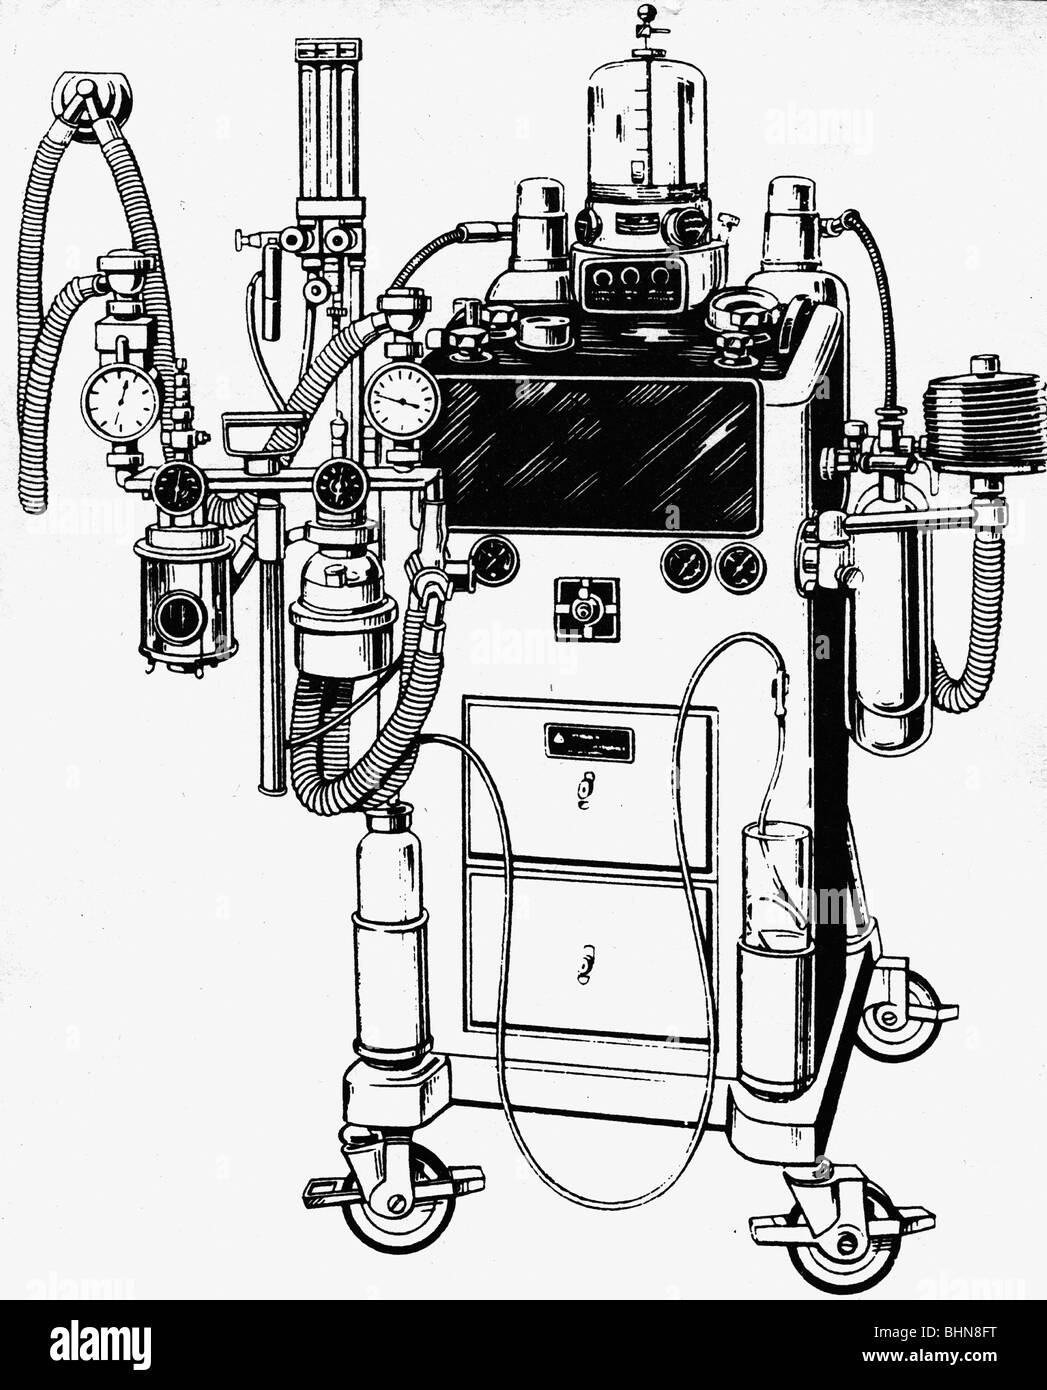 hight resolution of medicine narcosis anaesthetic machine by draeger one of the first machines for anaesthesia by inhalation narcotics additional rights clearances na